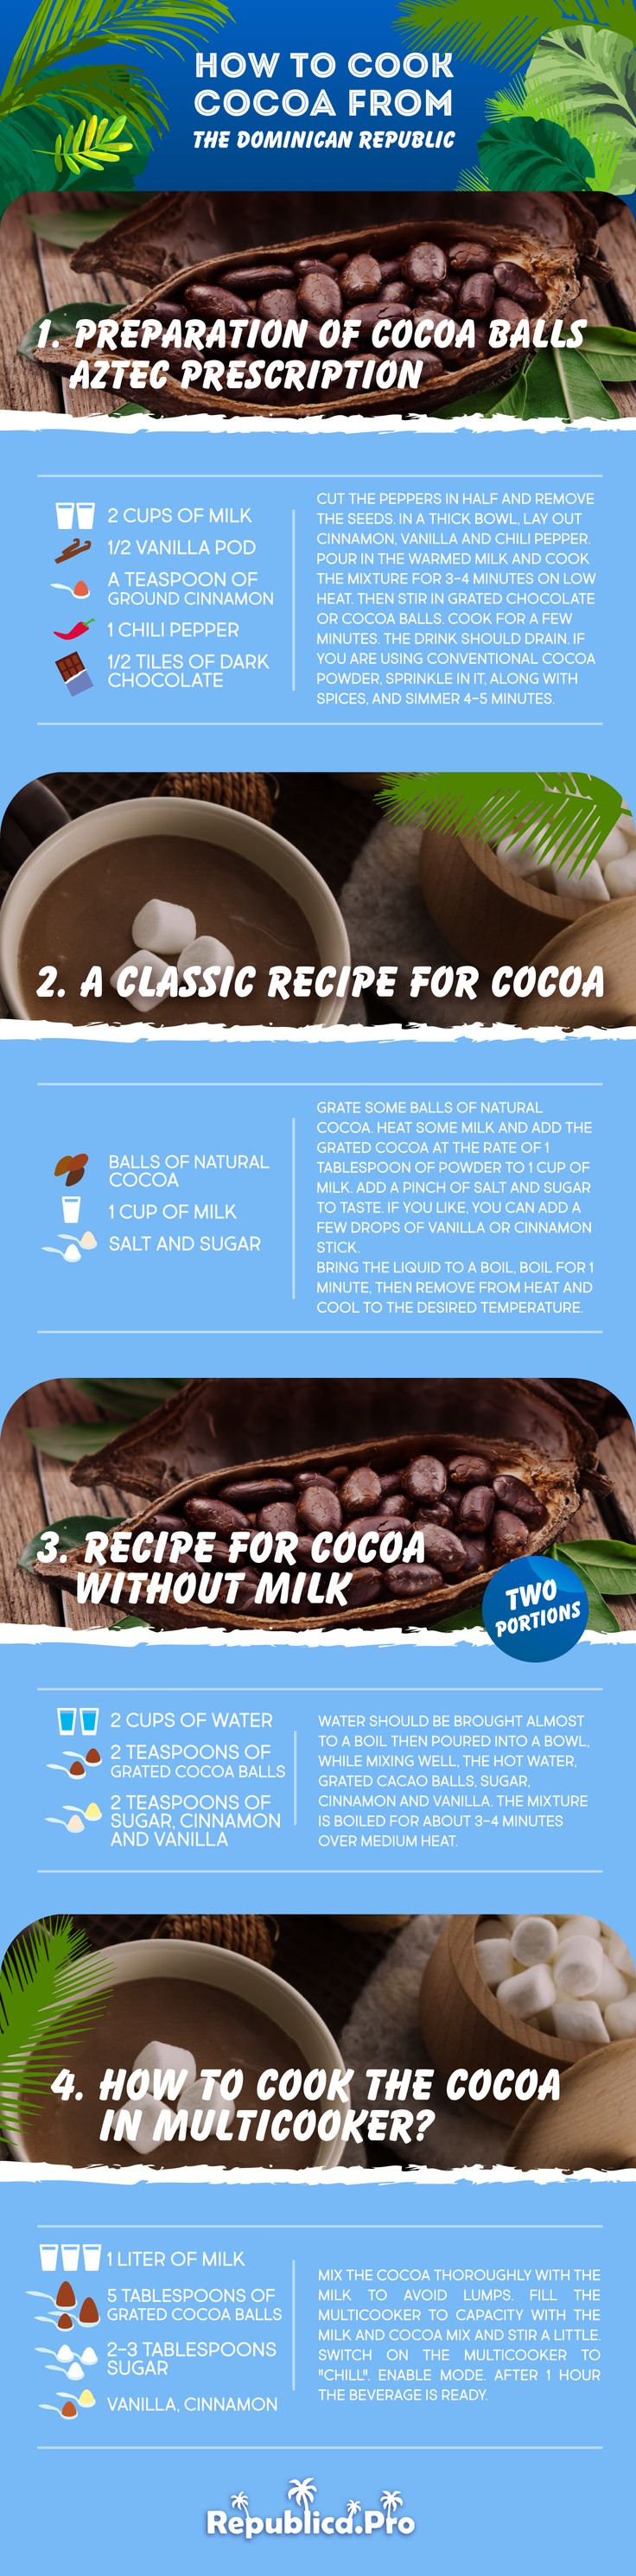 Many tourists bring natural cocoa balls home from the Dominican Republic but not many people know how to cook them. Here, we give a few drink recipes as well as talk about the beneficial properties of Dominican cocoa.